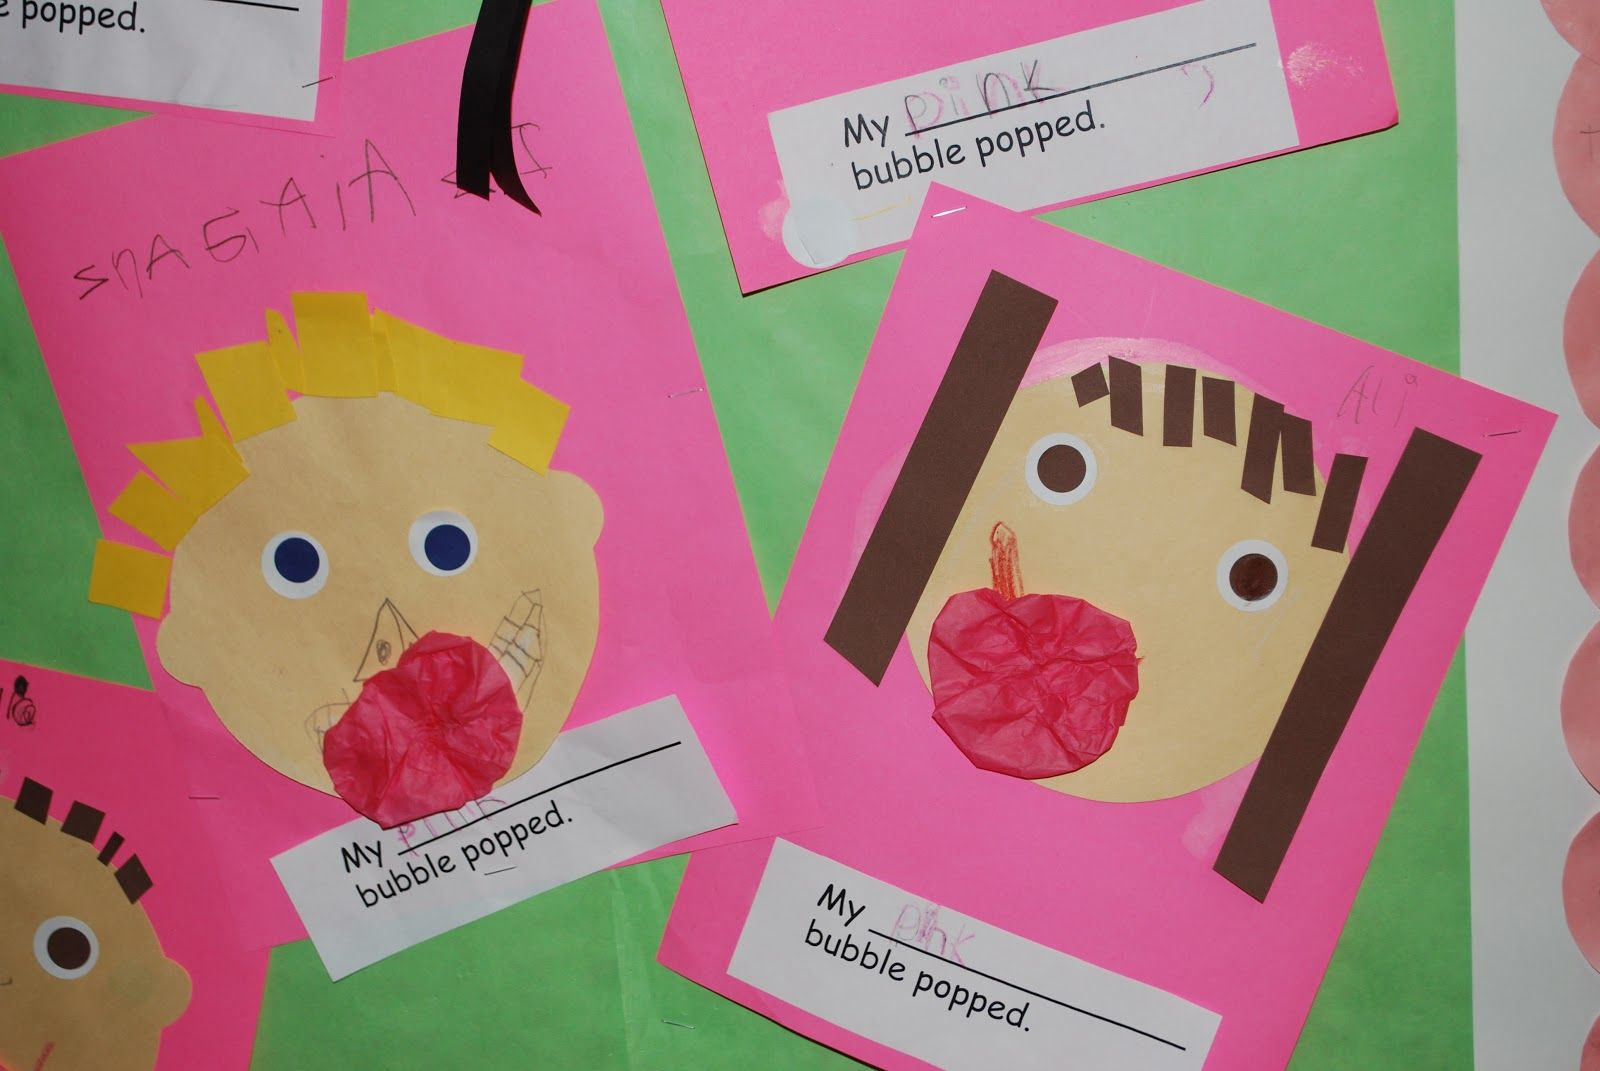 Kinder Kapers: Today was pink. Teaching the color pink, graphing ...